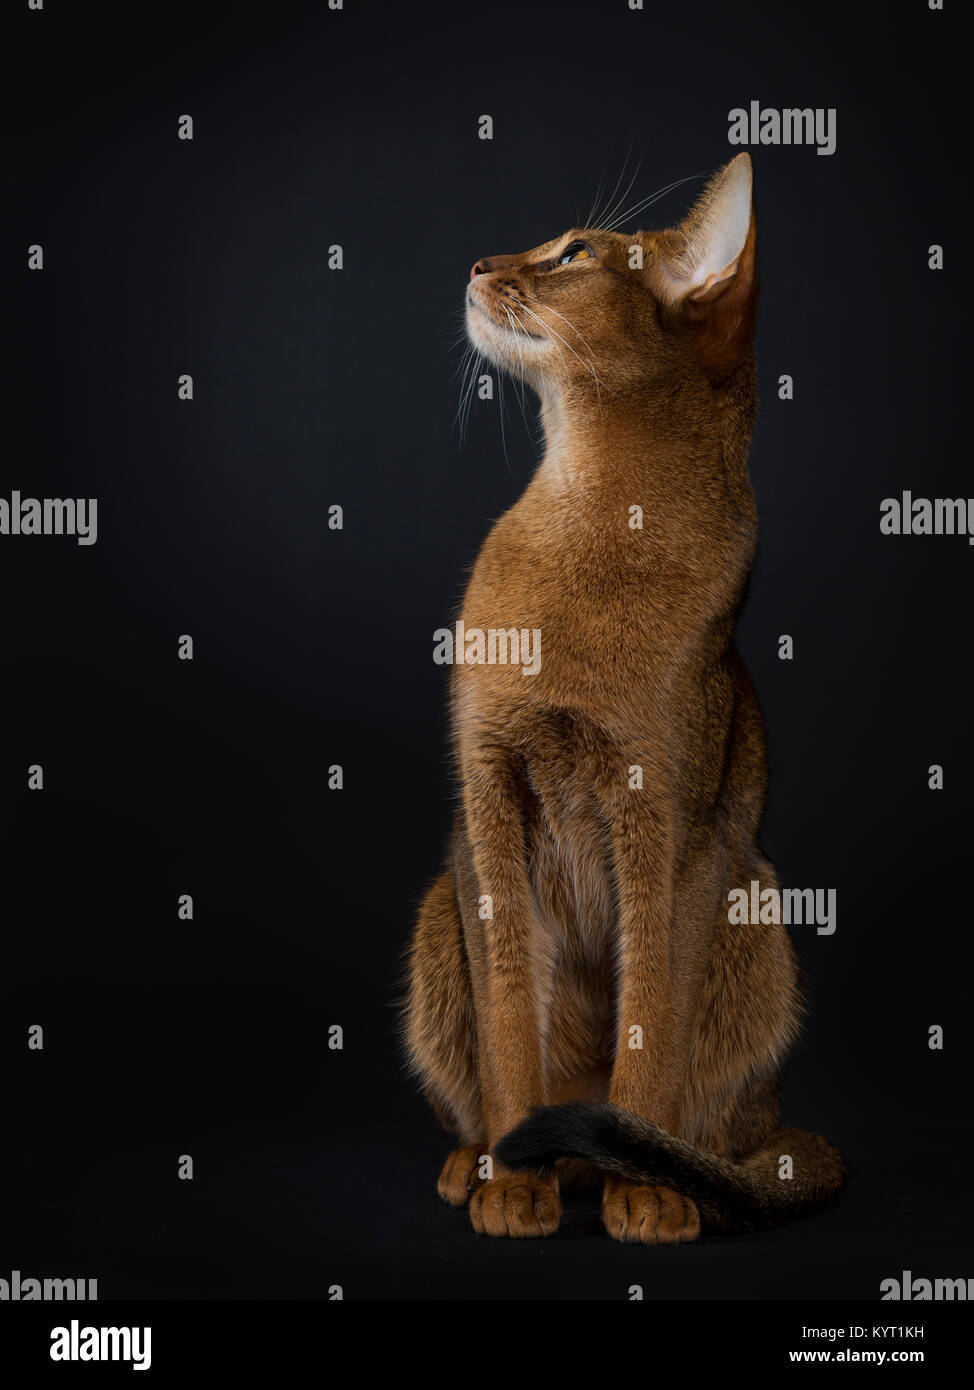 Abyssinian Cat Sitting Stock Photos & Abyssinian Cat Sitting Stock ...